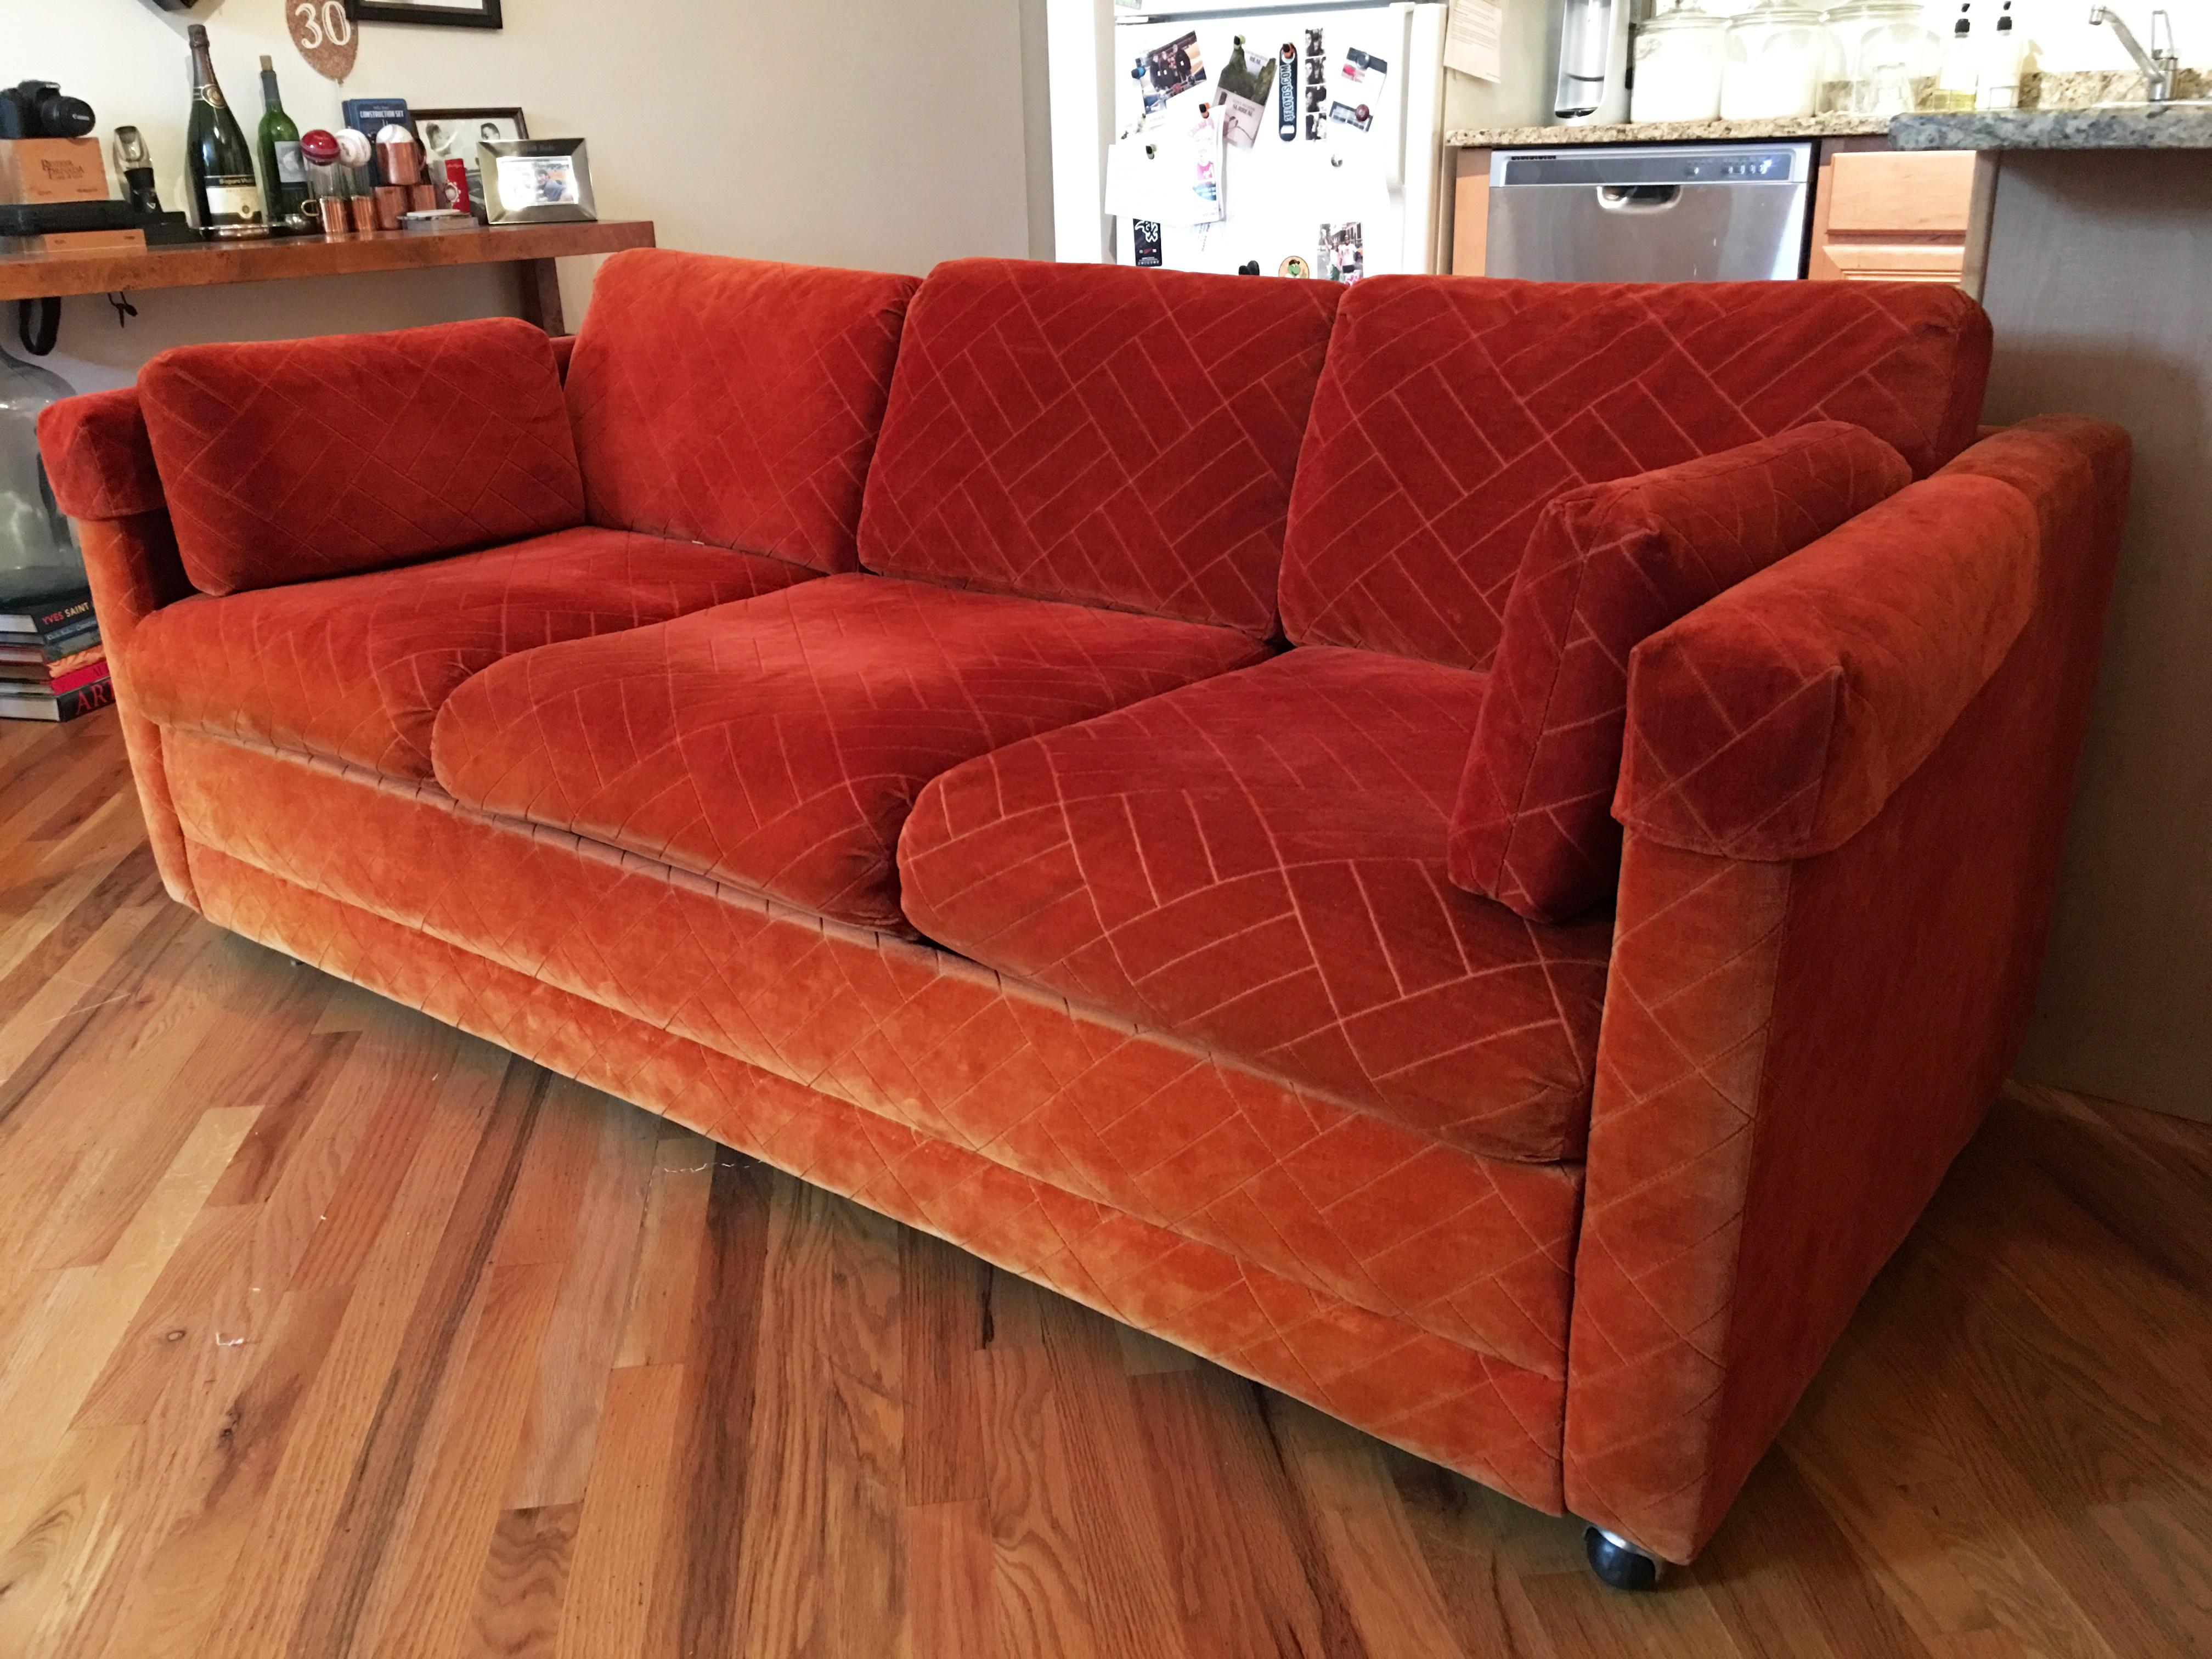 Marvelous This Awesome Pull Out Couch Is Truly A Unique, And Totally Rad Piece Of  Furniture